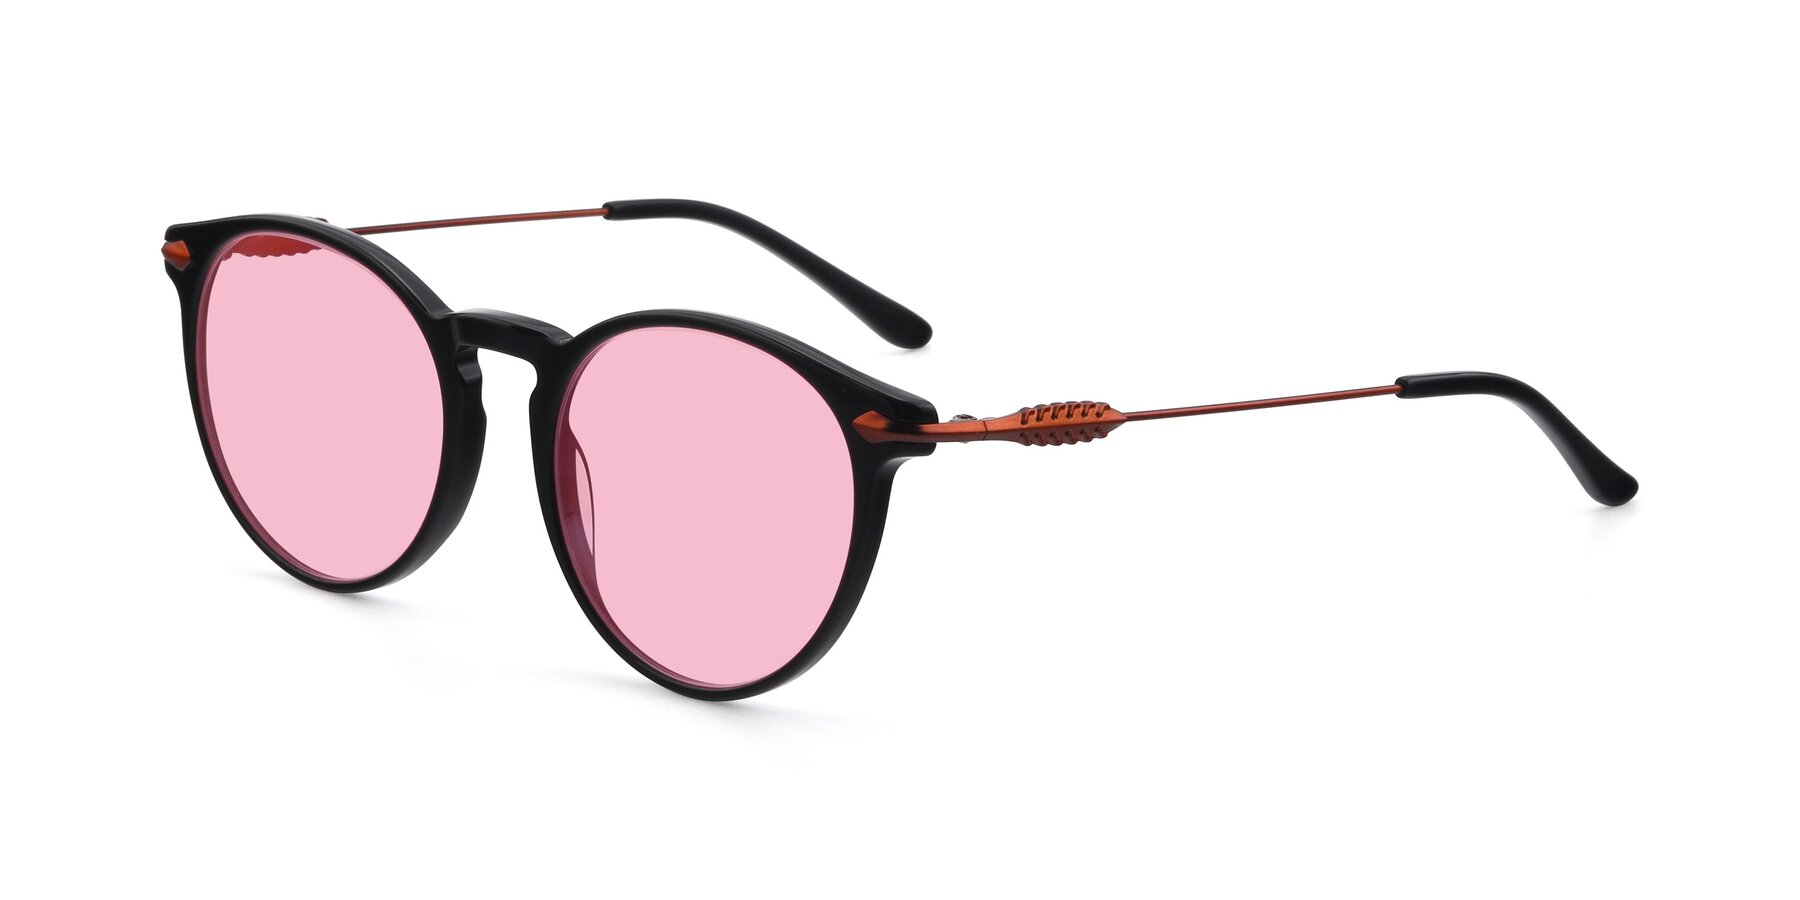 Angle of 17660 in Black with Medium Pink Tinted Lenses